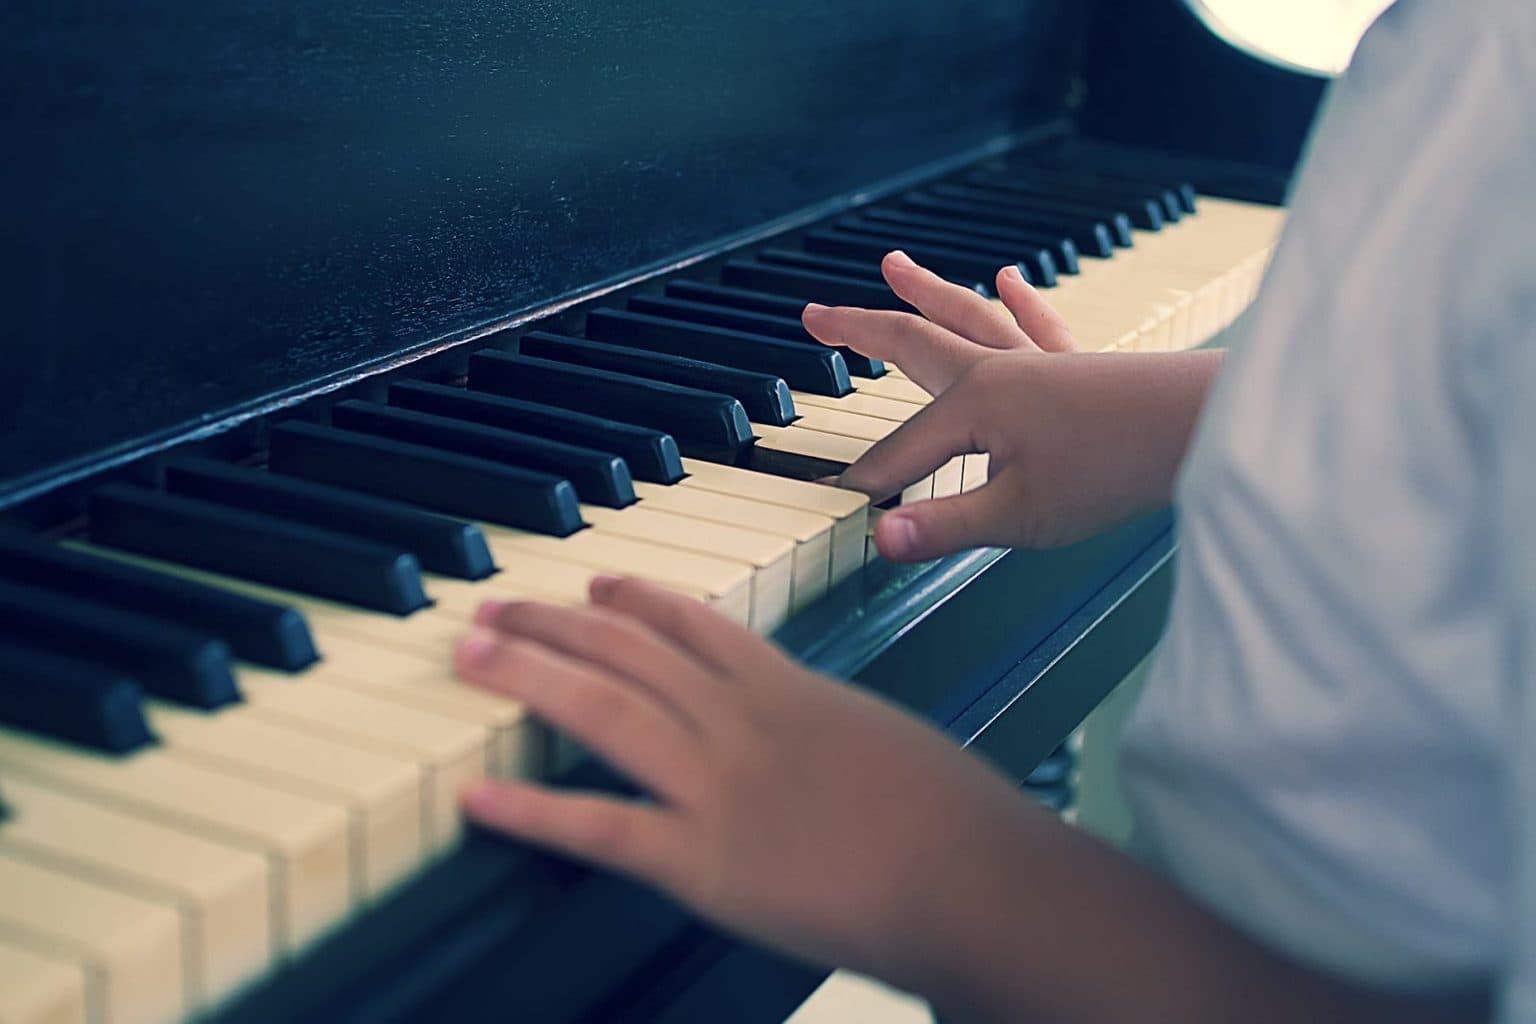 piano small hands